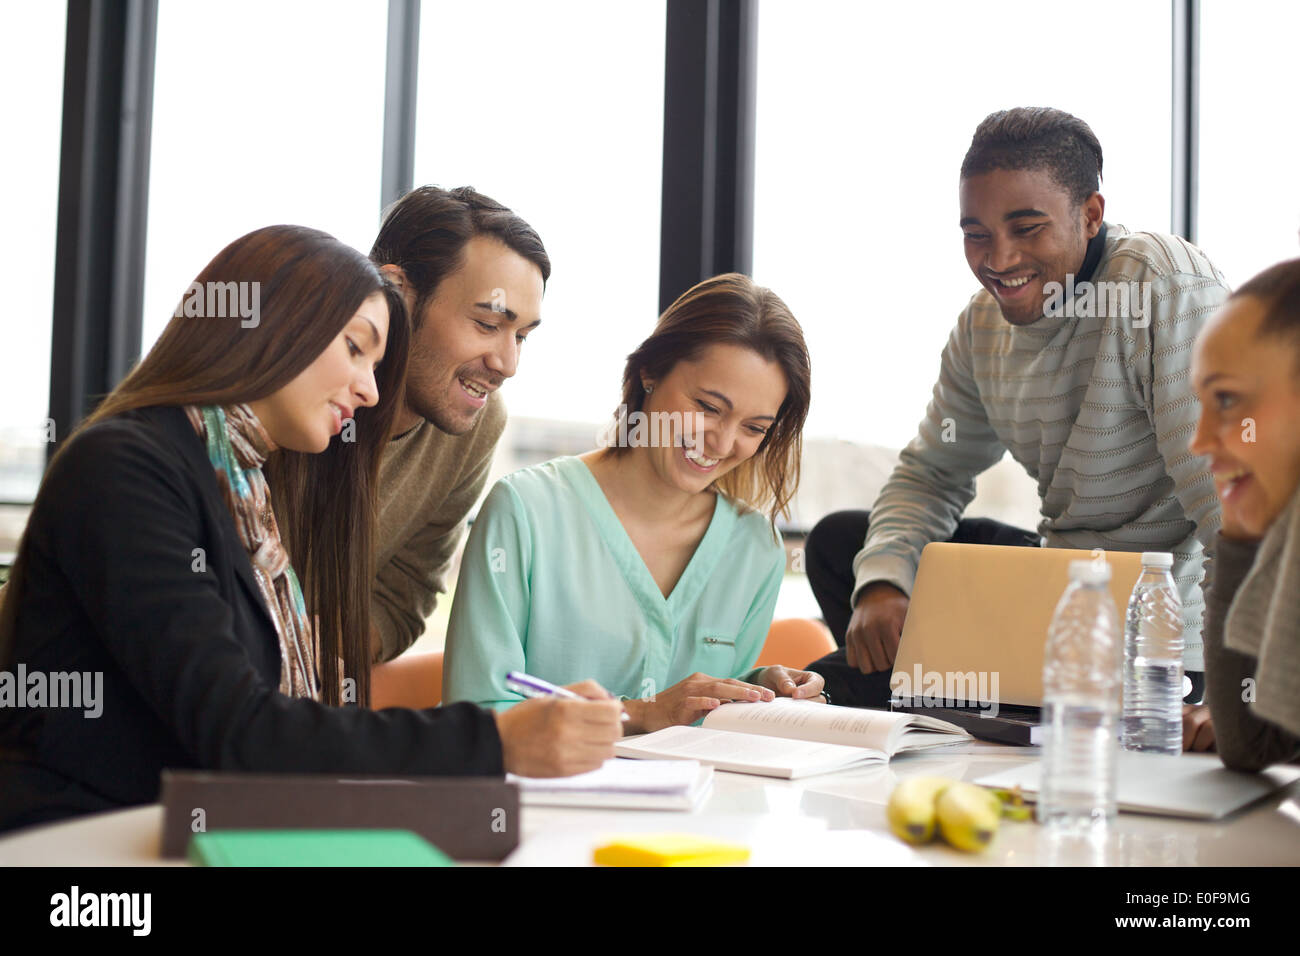 Group of multiracial young students studying together at a table. Mixed race people doing group study. - Stock Image